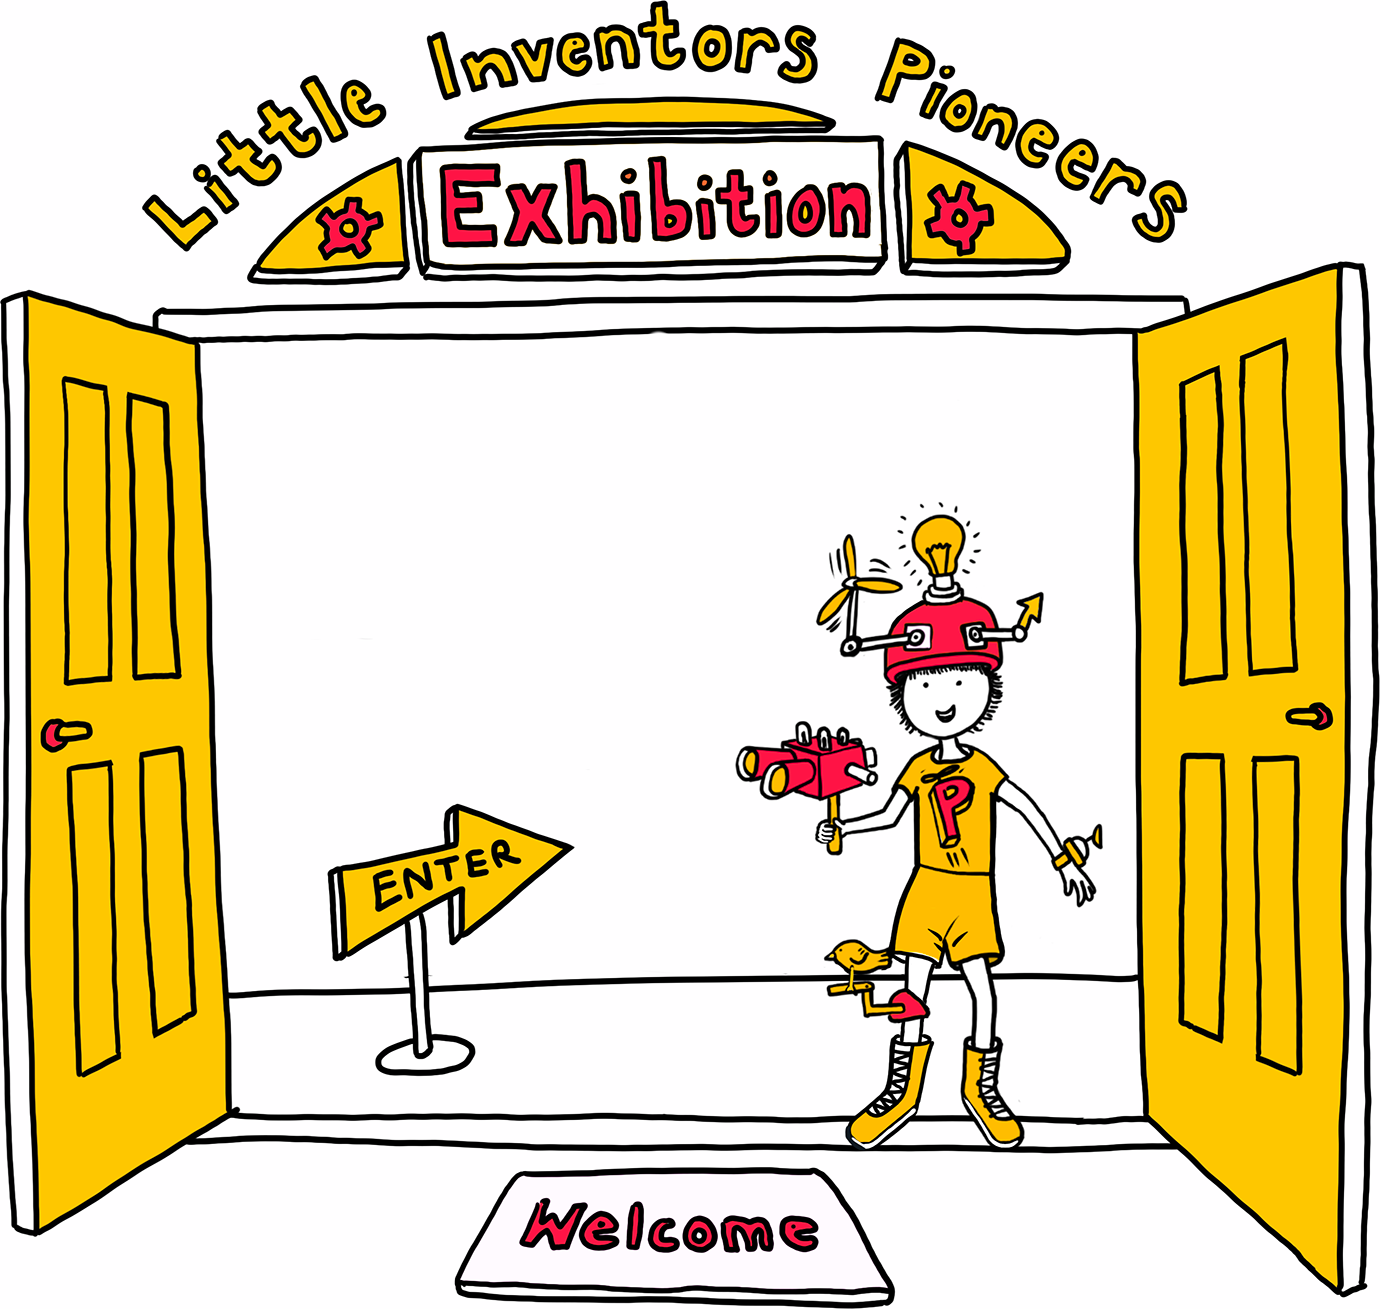 Enter the Little Inventors Pioneers Exhibition